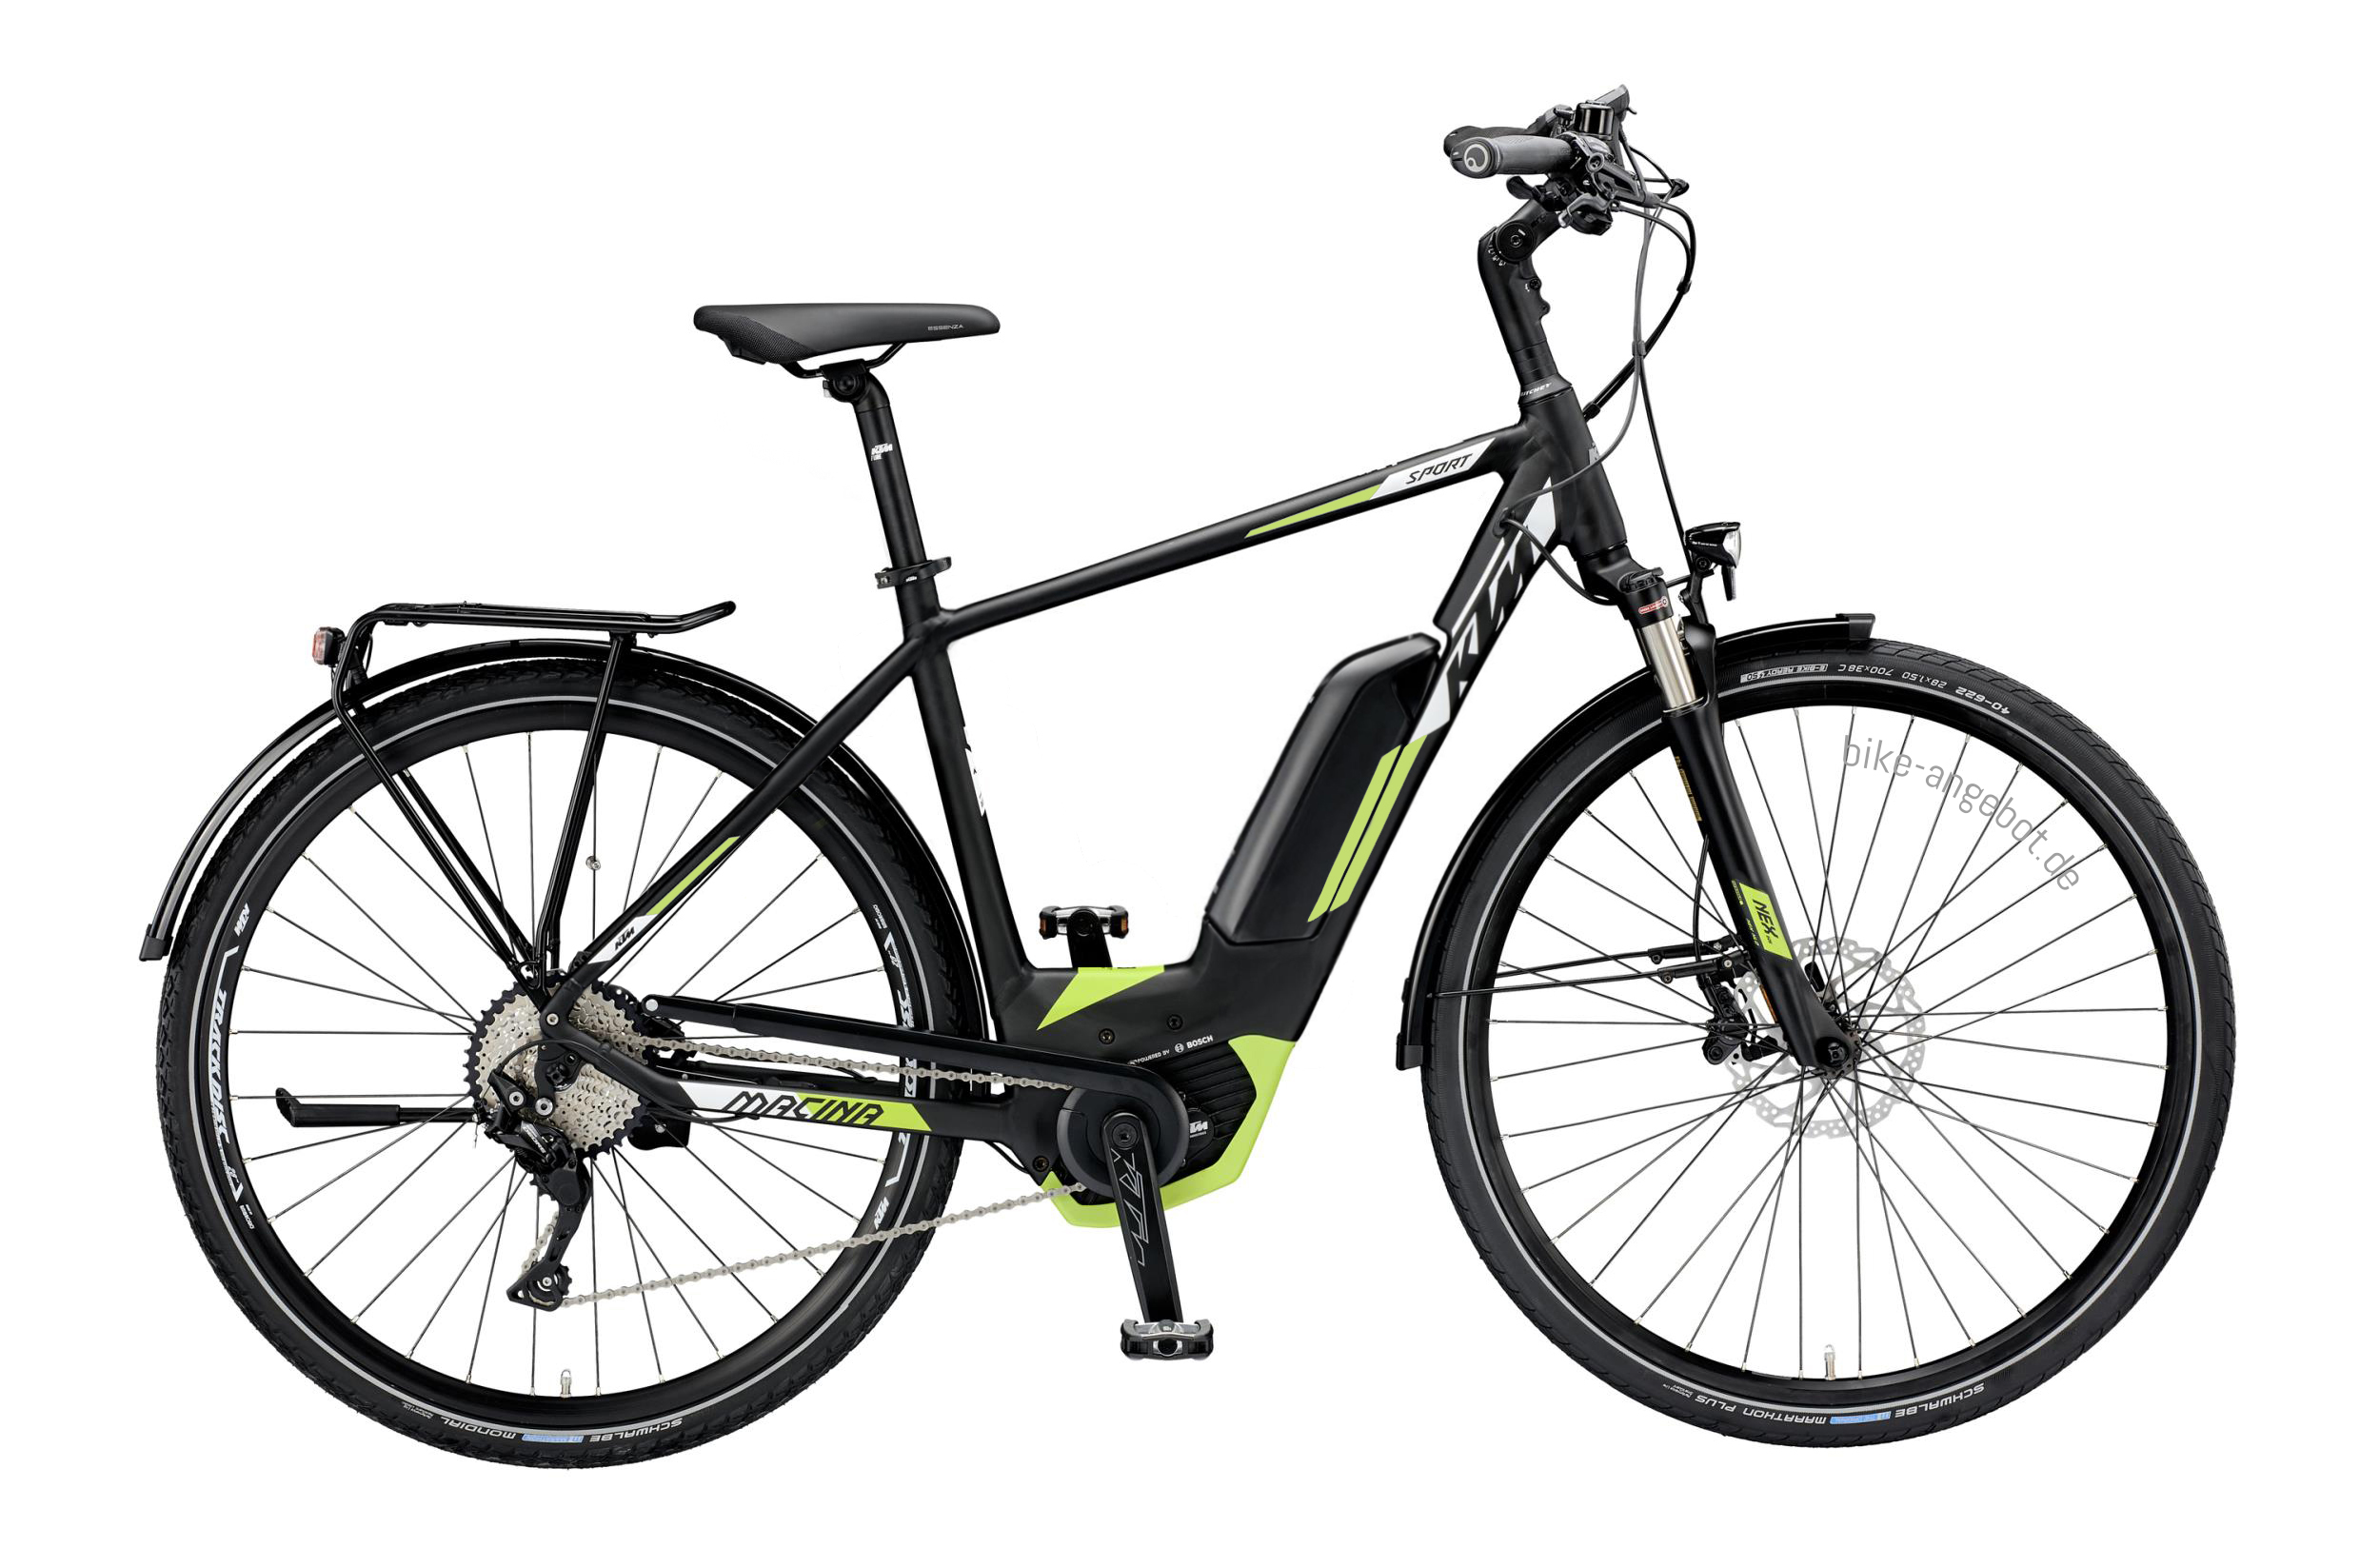 KTM MACINA SPORT 10 CX5 black matt (white green) 2019 - HE 28 -  56 cm